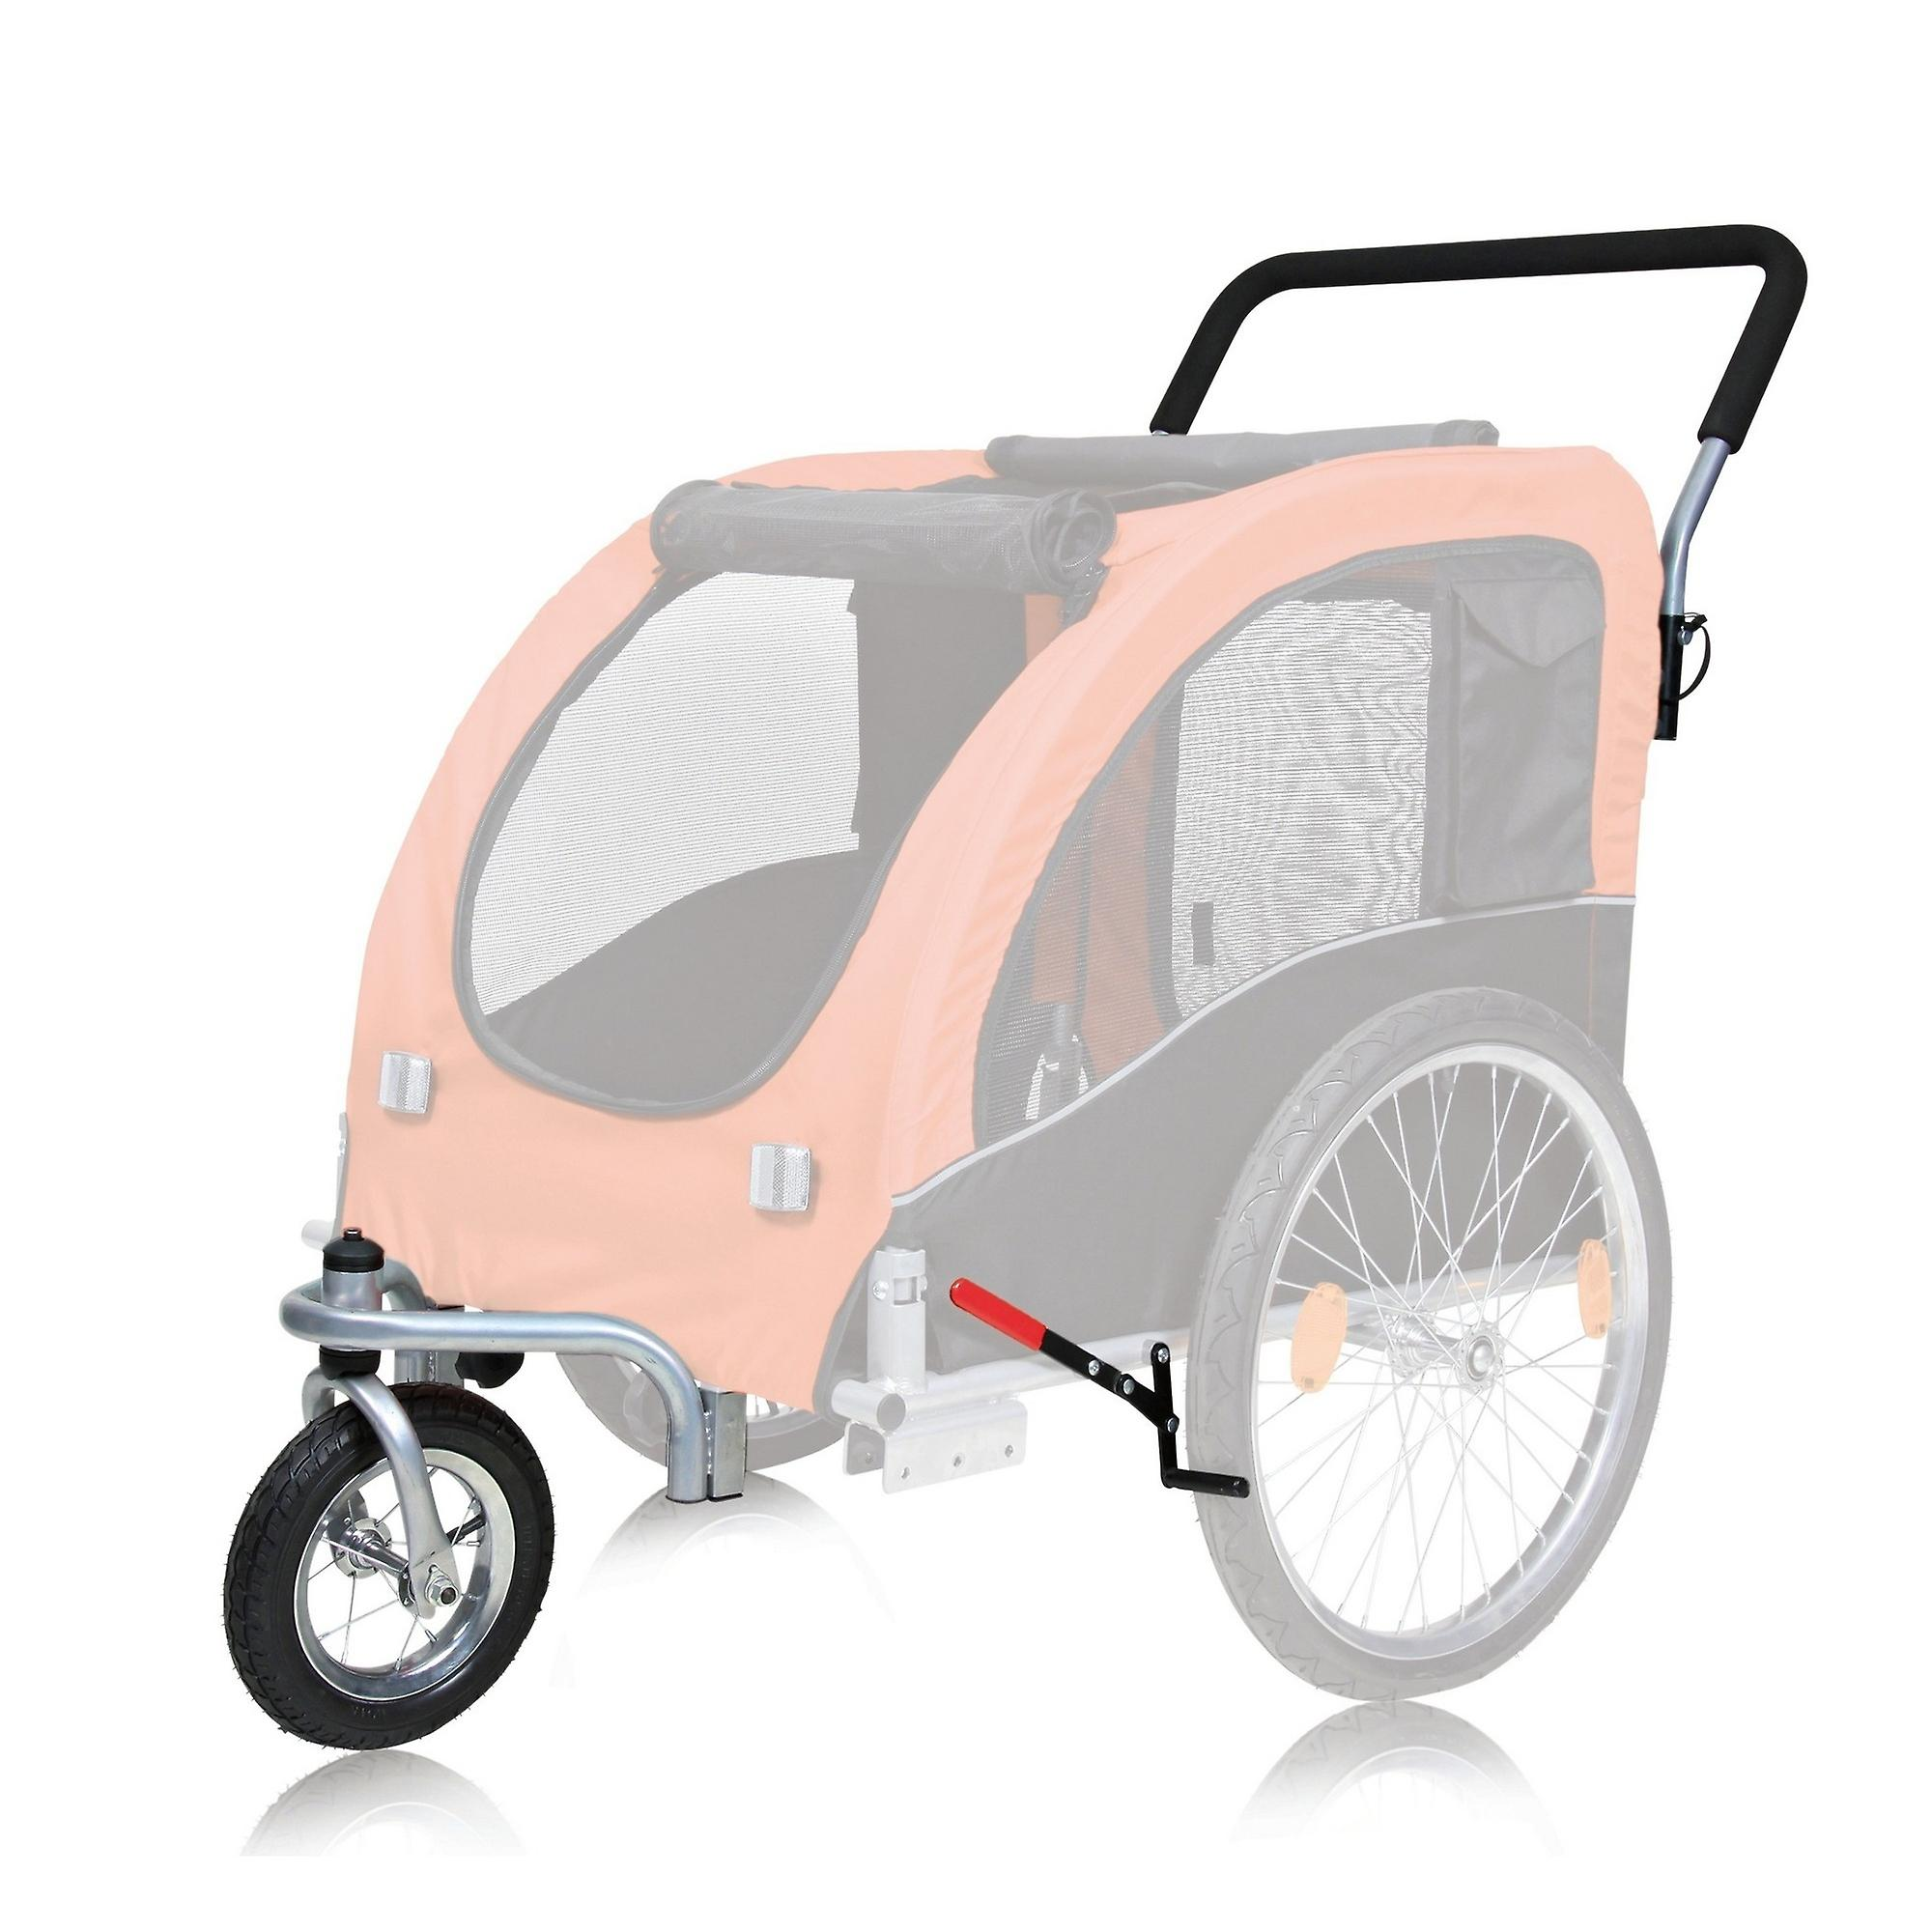 Trixie Stroller Conversion Kit With Non-Slip Handle